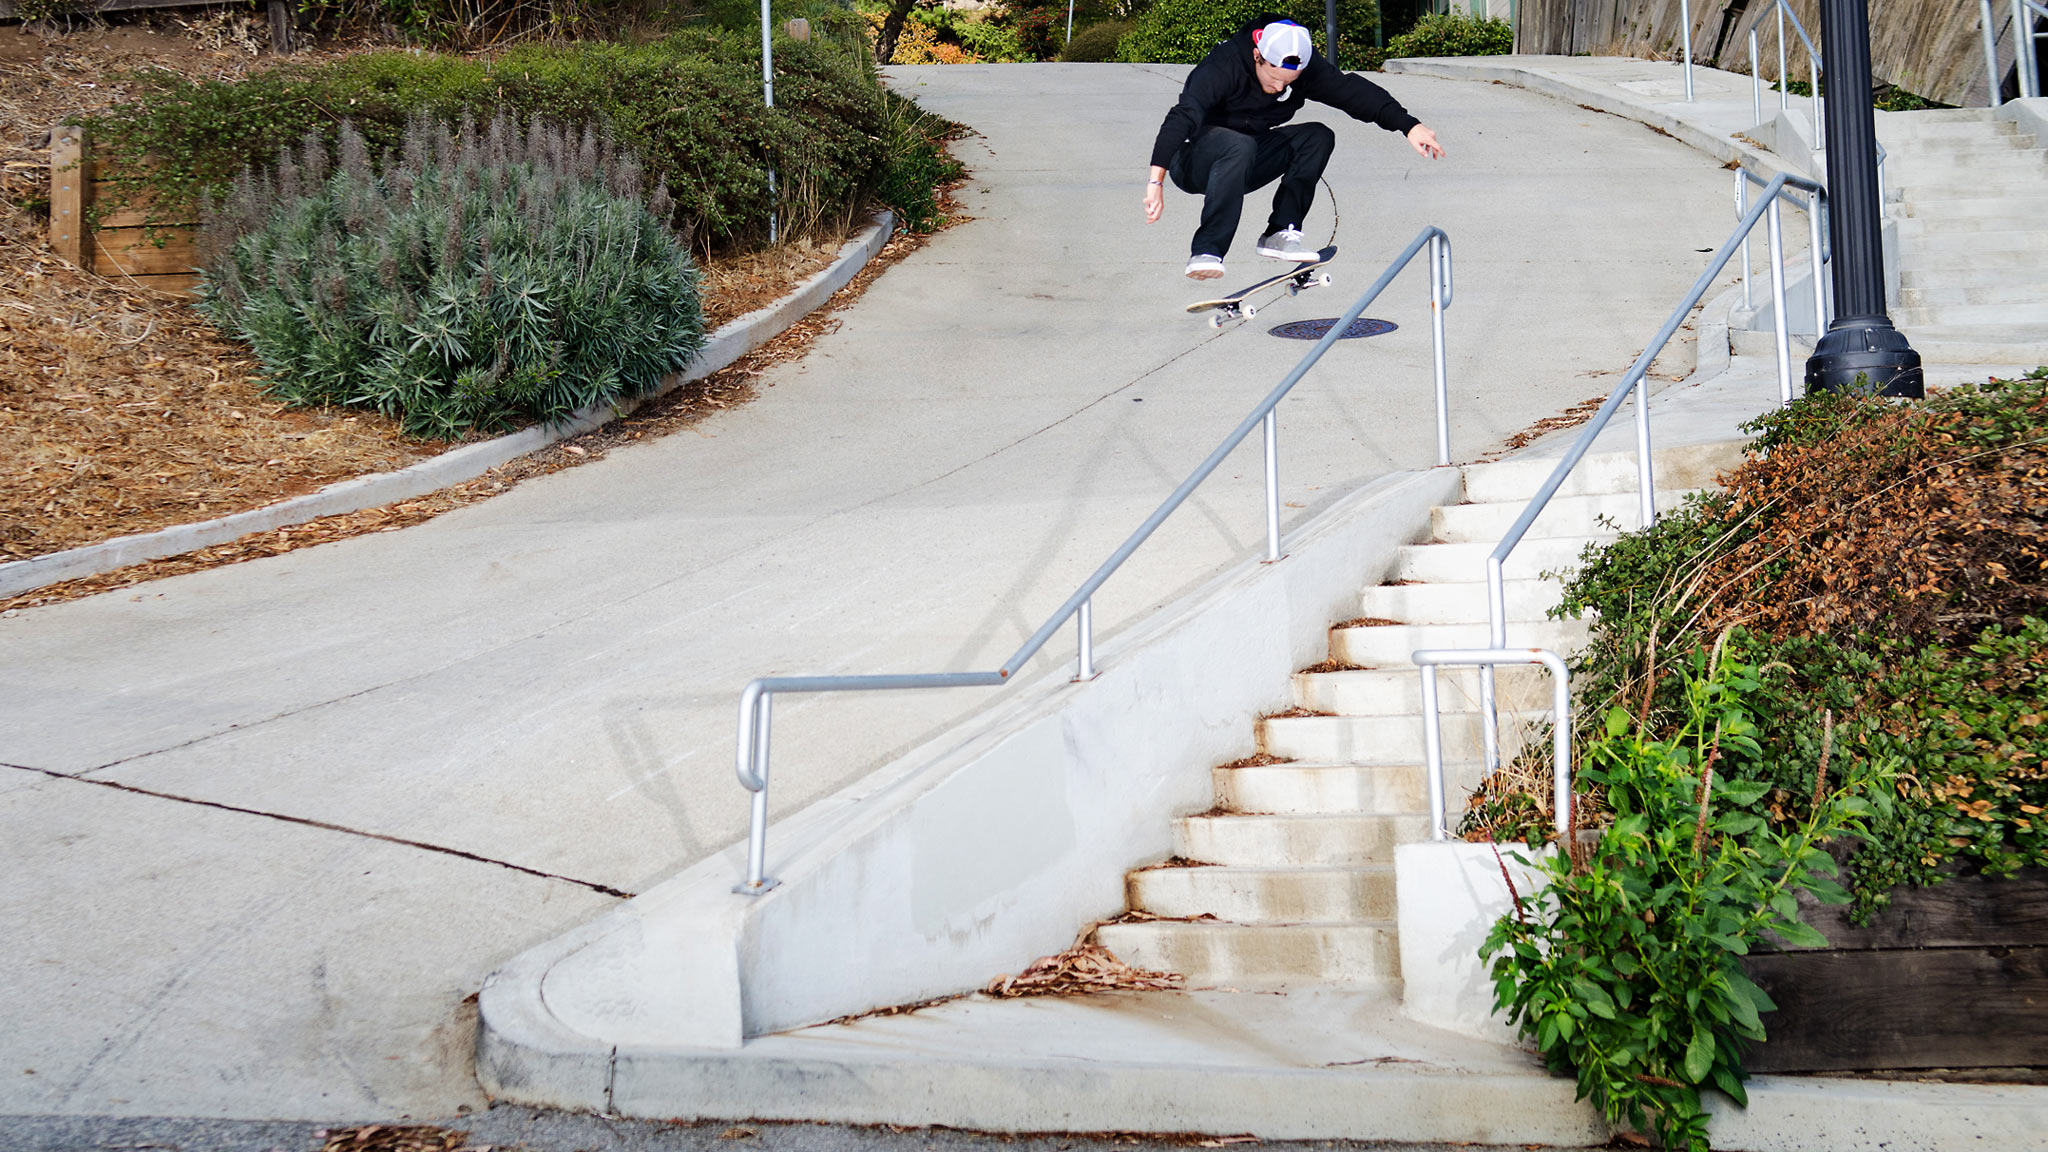 Cody Catfish McEntire switch kickflips a rail into the streets of San Francisco.